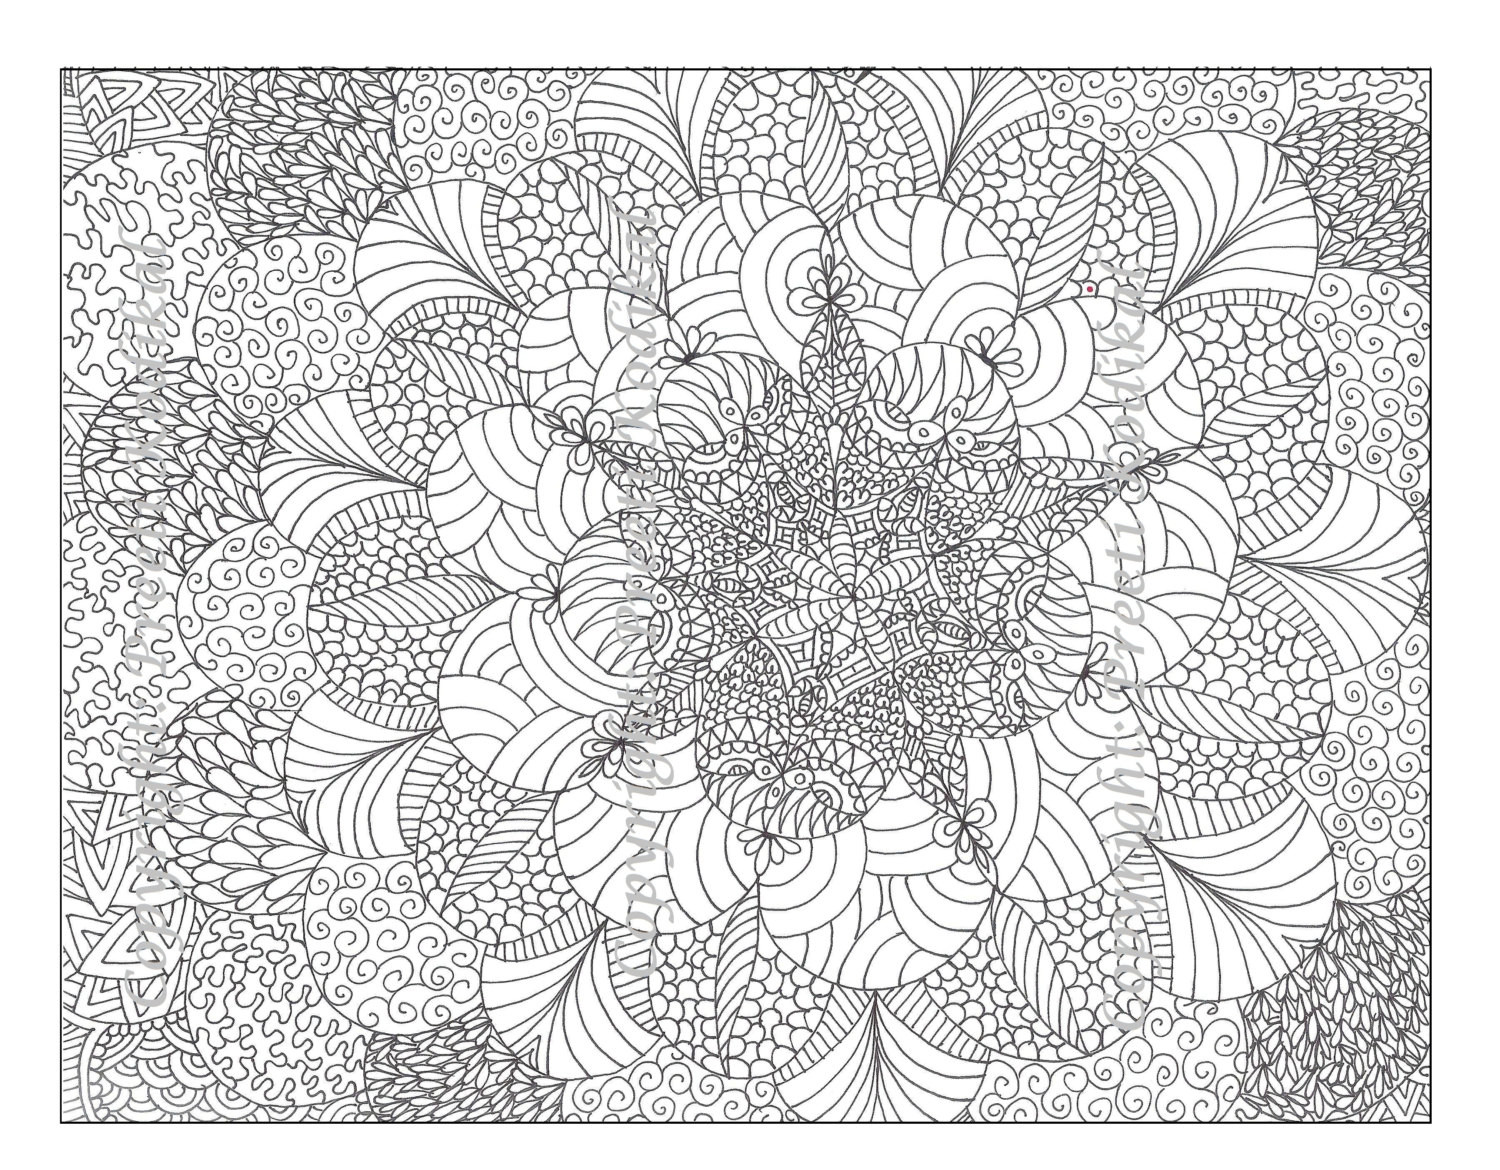 Coloring Pages For Adults To Print  Free Printable Abstract Coloring Pages for Adults